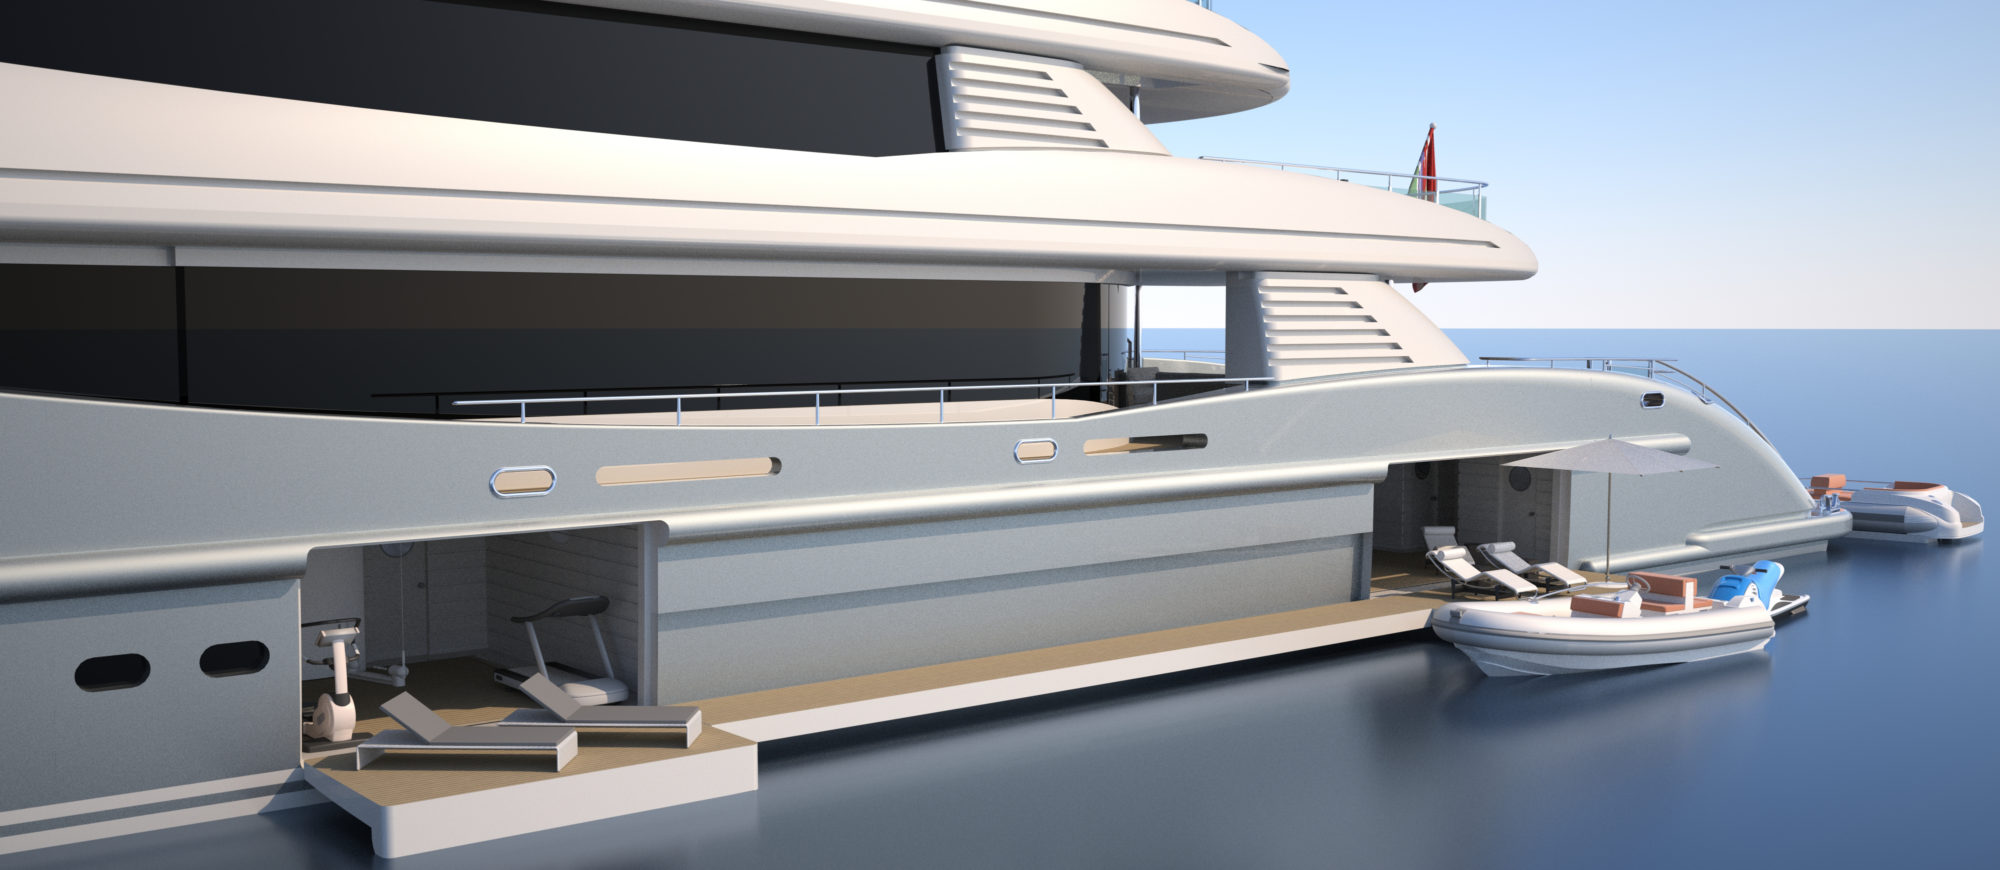 Conrad C233 Superyacht Concept Vallicelli Visualisation Side Tender Beach Club Access 1